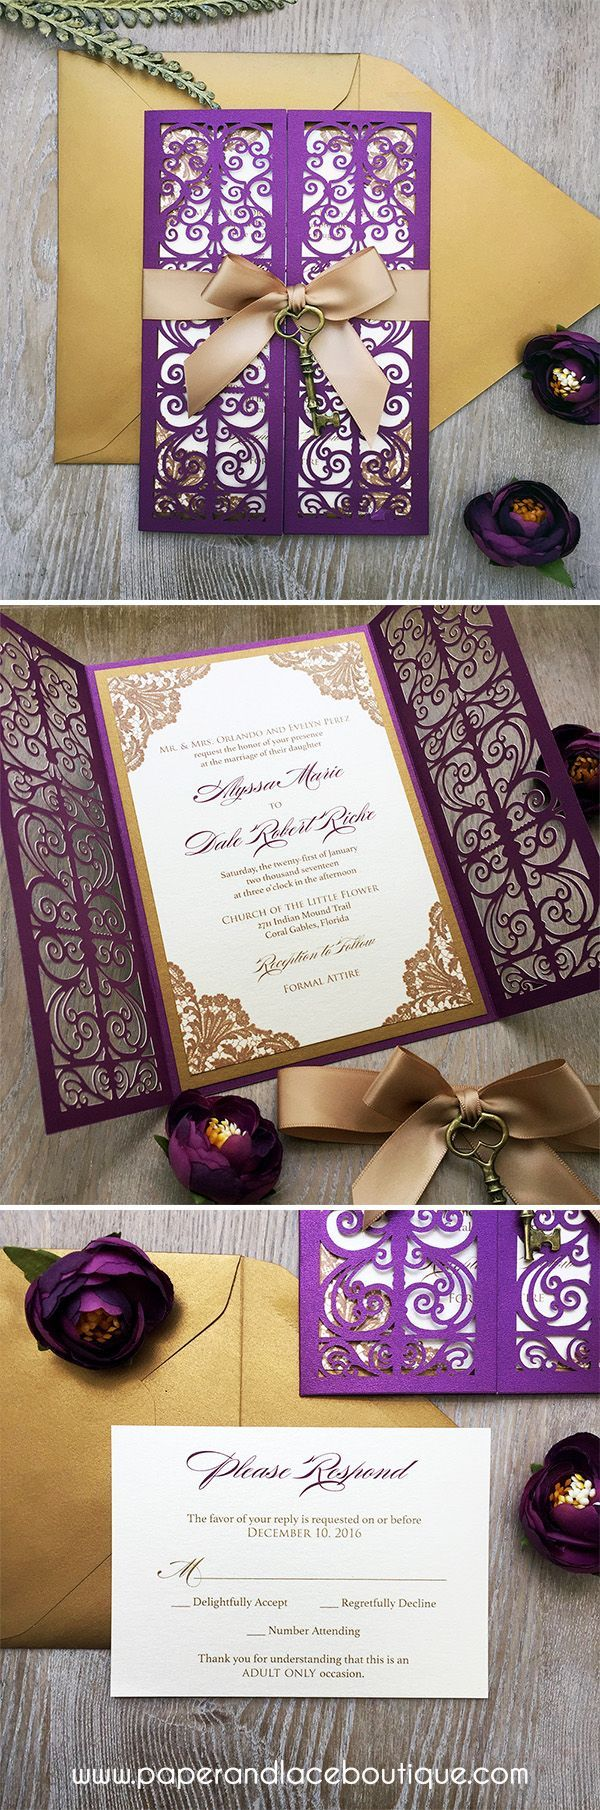 Best 25 Purple invitations ideas – Gold and Purple Wedding Invitations